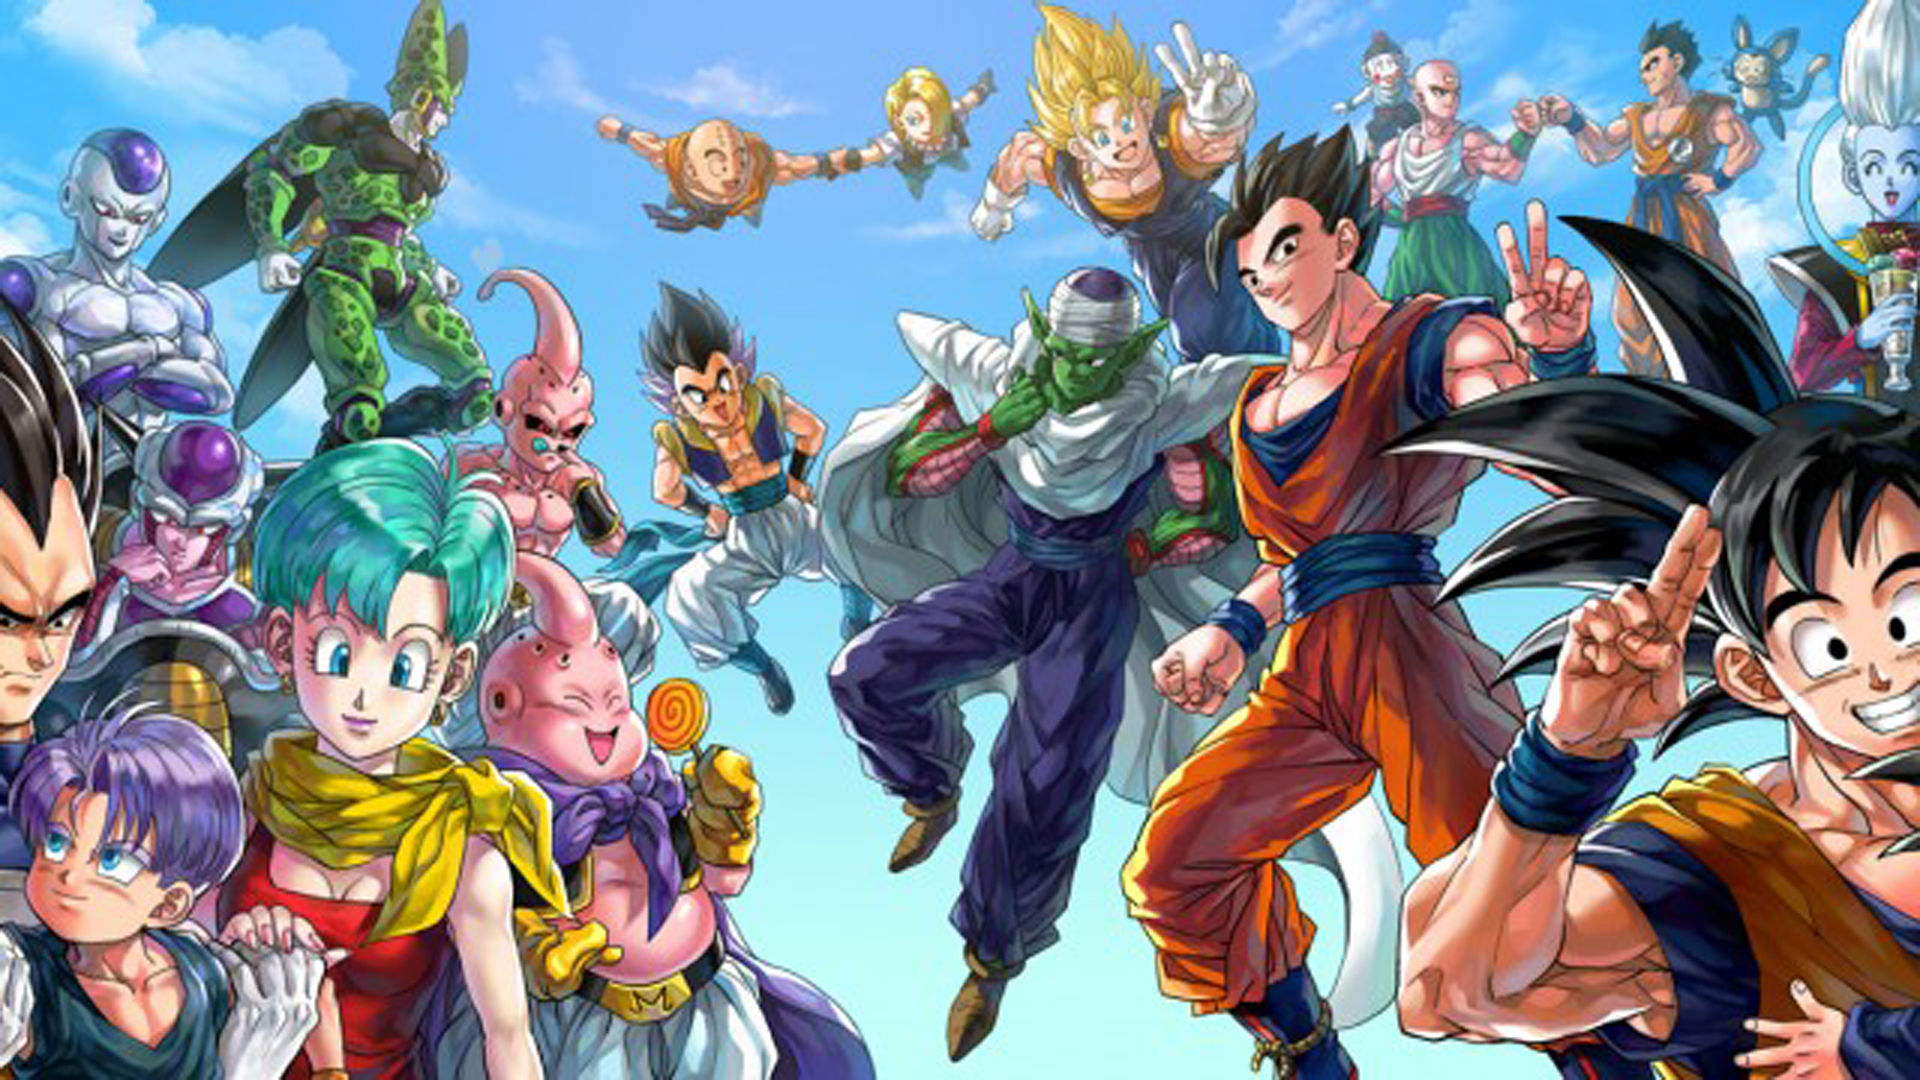 Image 5669178 Dragon Ball Super Wallpapers Jpg Community Central